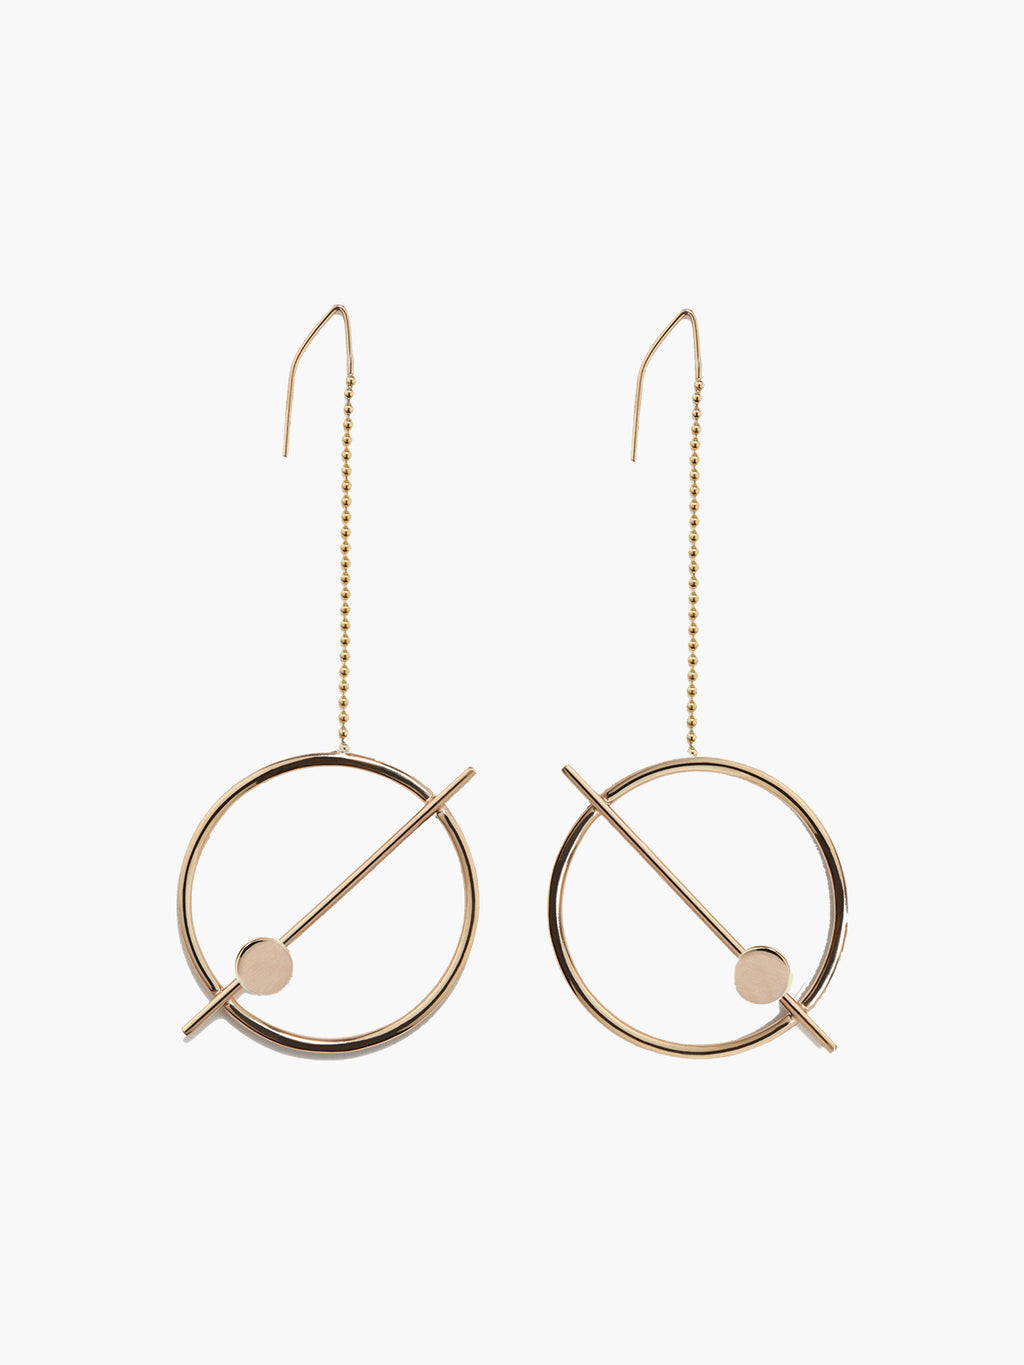 Exclusive Boreas III Earrings